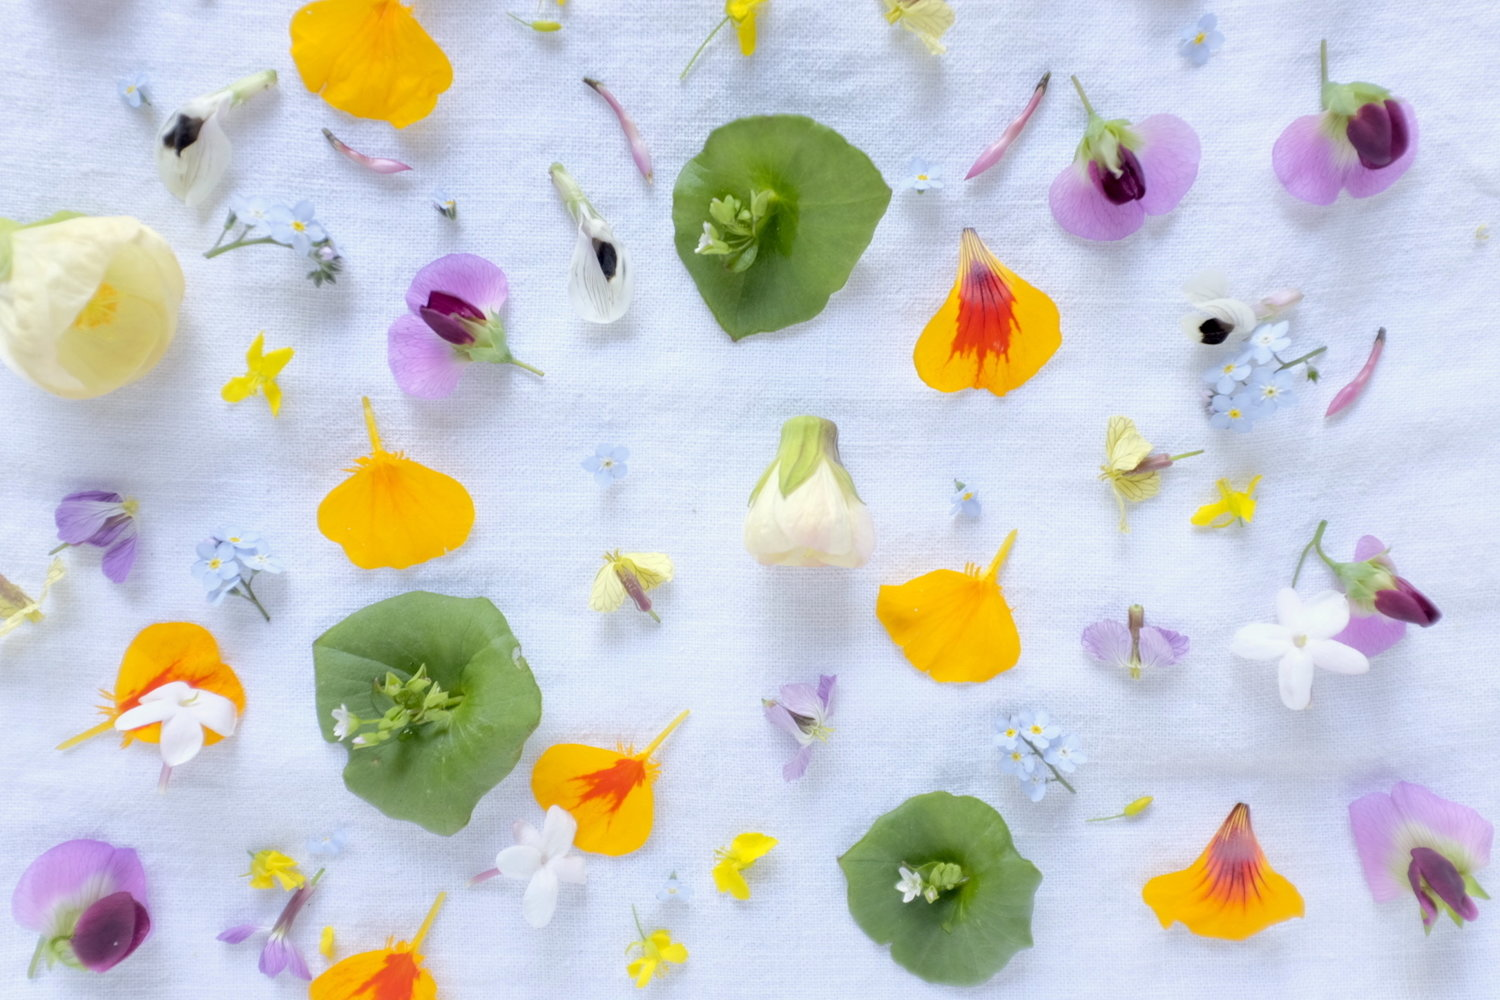 Kosmic Guide To Edible Flowers The Kosmic Kitchen